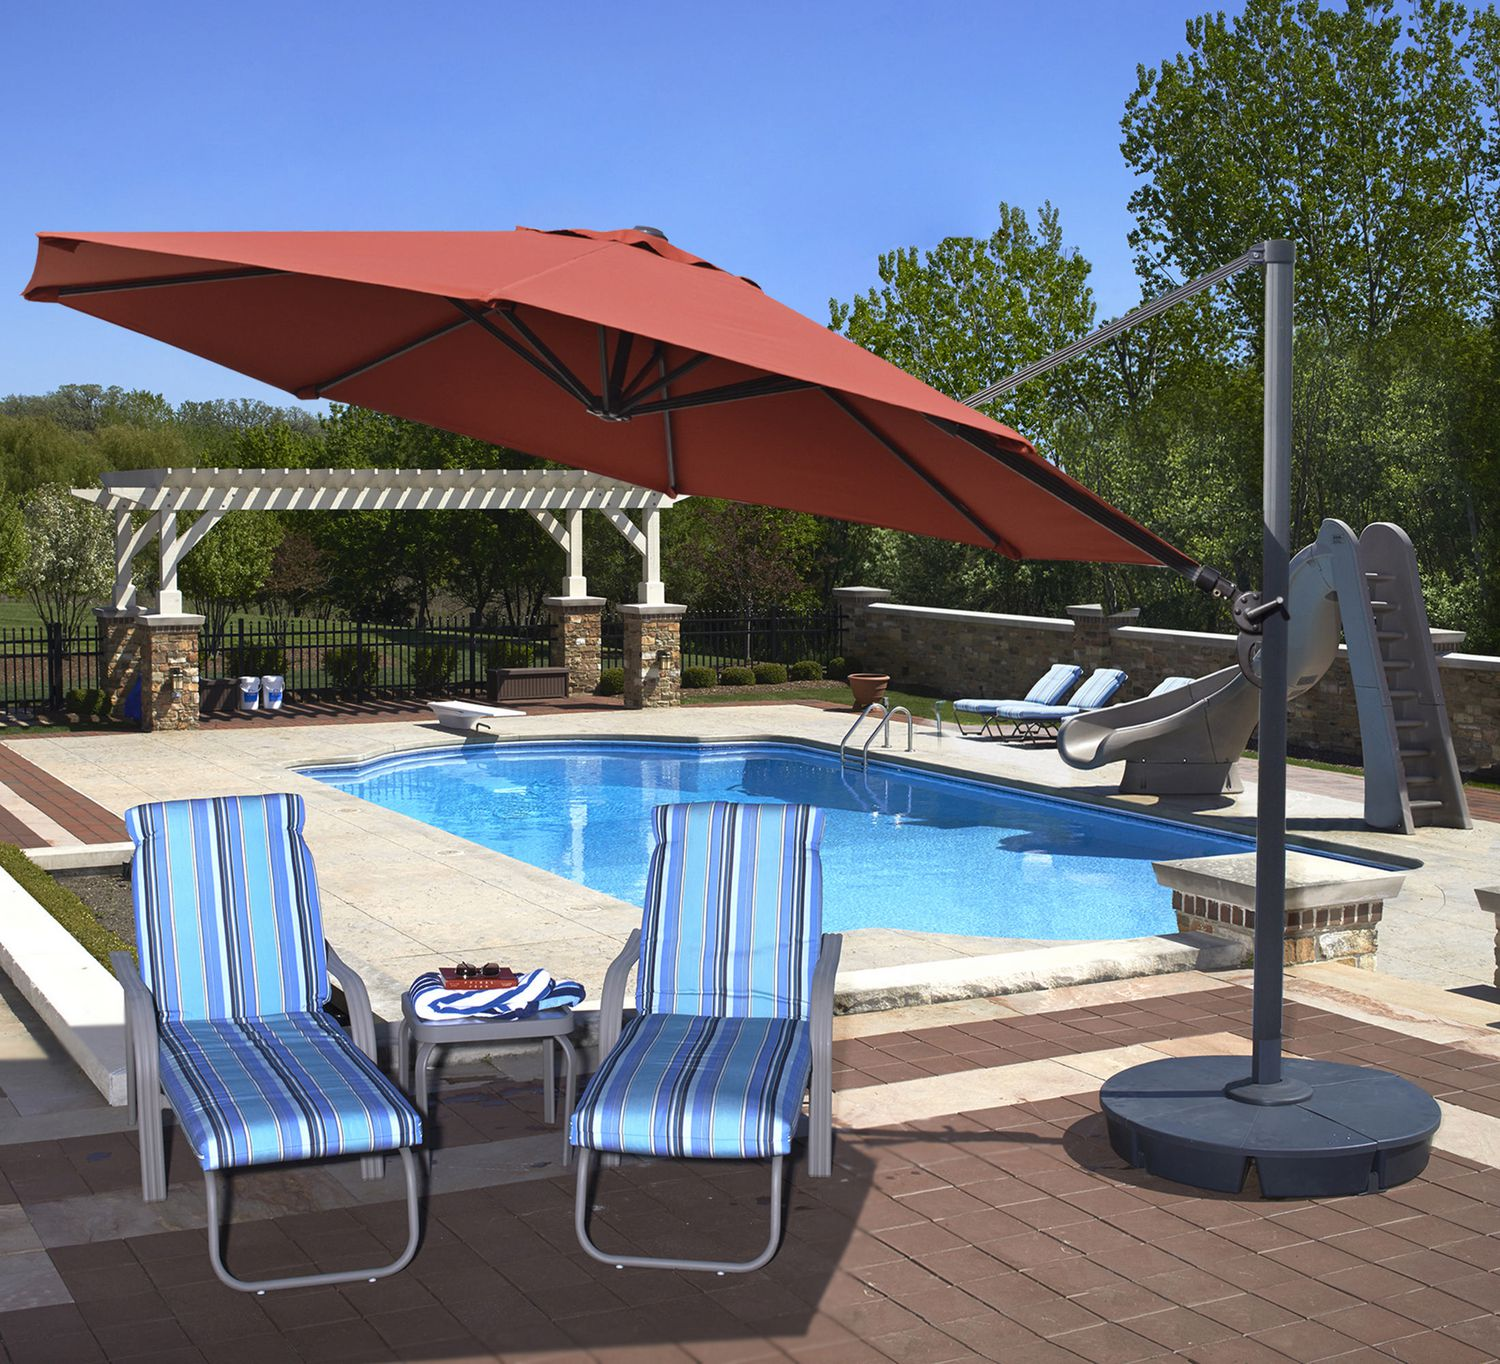 products offset umbrella patio market hanging best outdoor multiple colors new choice